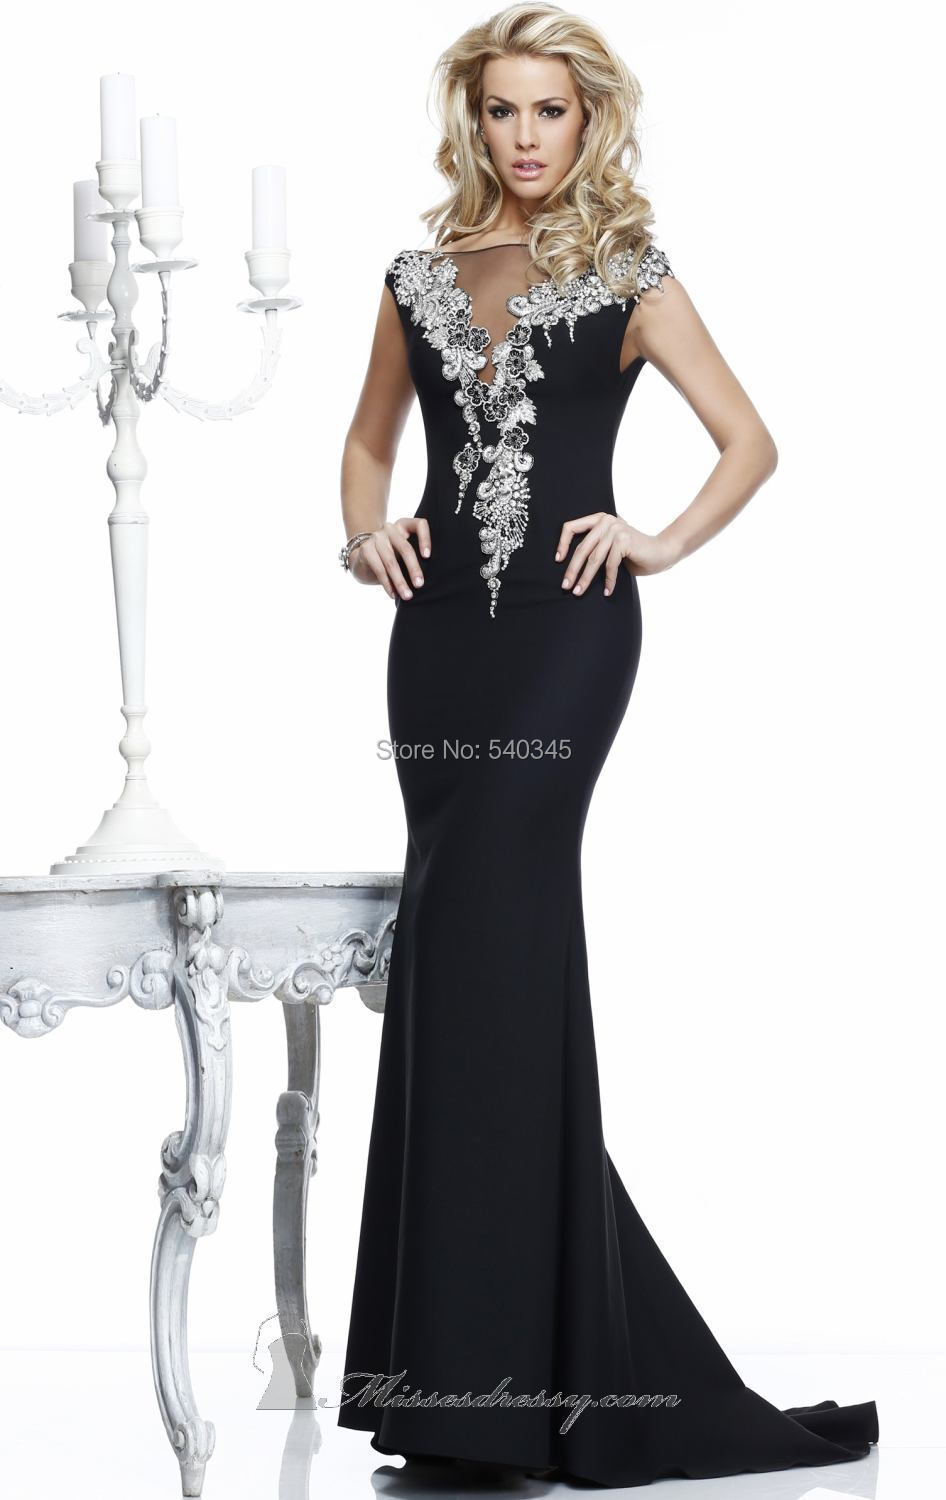 Boat Neck Mermaid Black   Evening     Dresses   Crystal Beading Sequined Backless Chiffon Floor-Length Long Prom Party Gowns 2014 E61